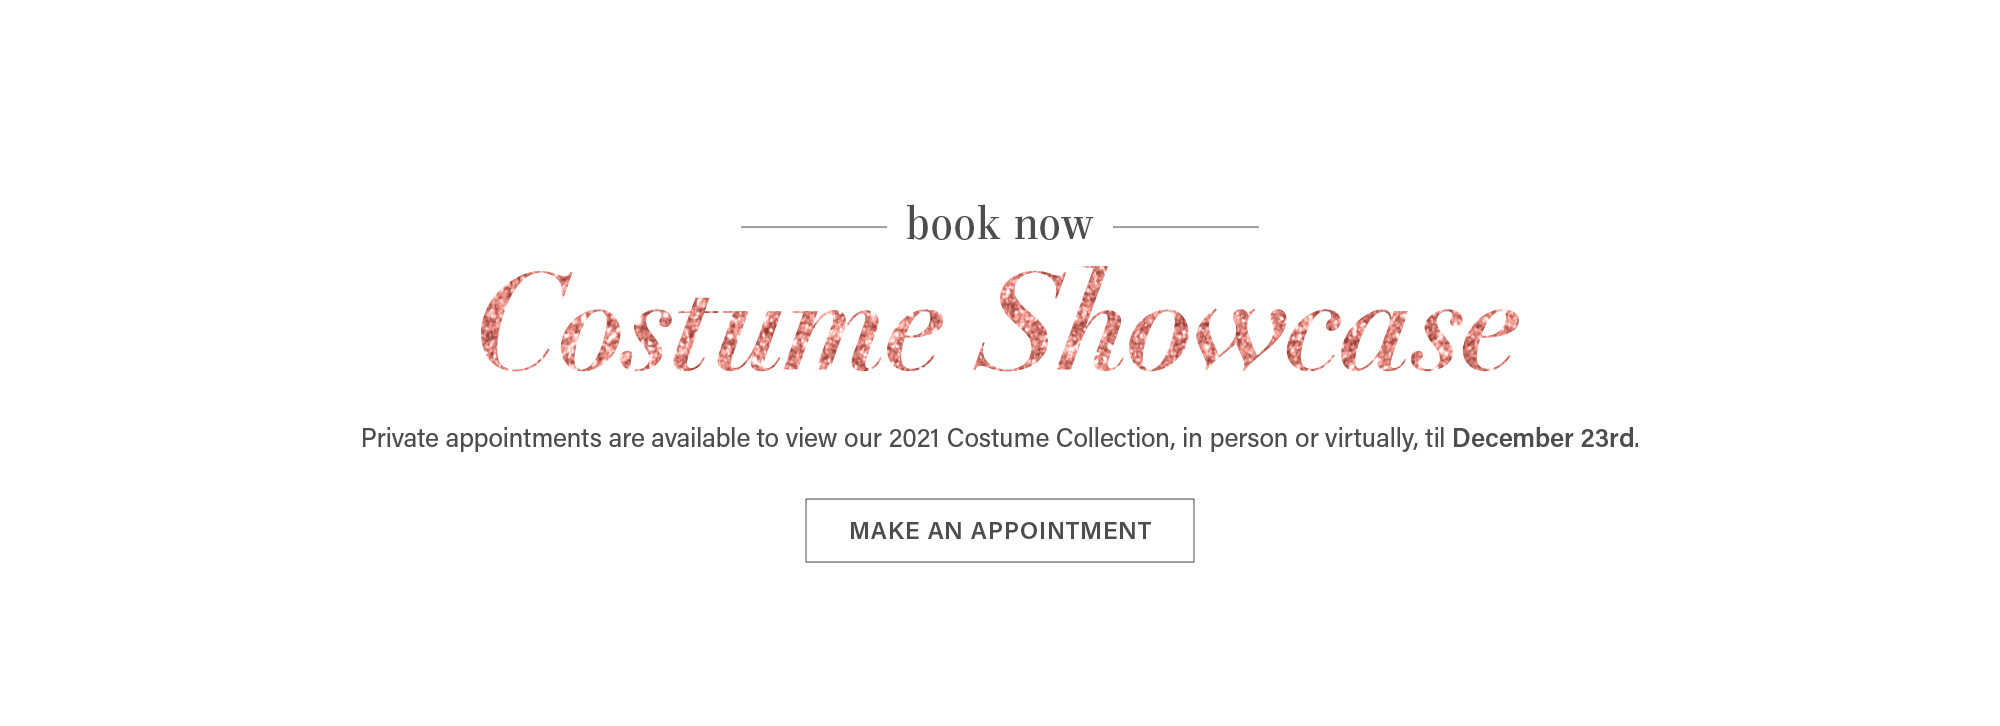 Sign up for a private costume showing!